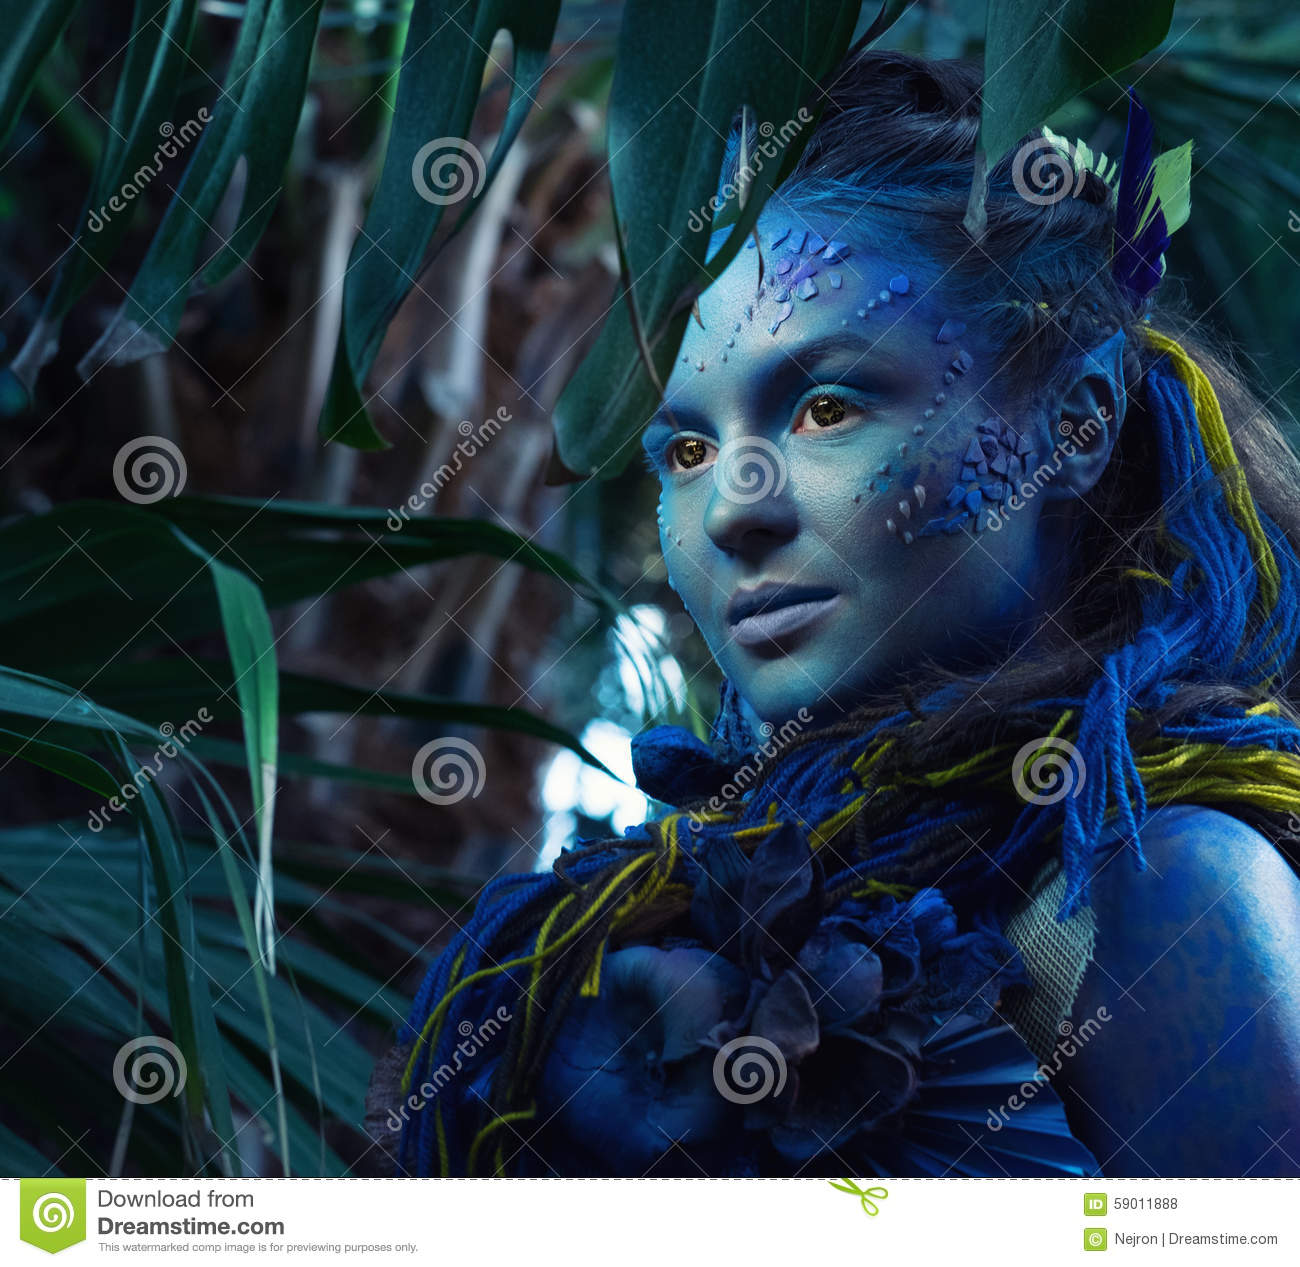 Avatar Woman: Avatar Woman In A Forest Stock Photo. Image Of Enchanted